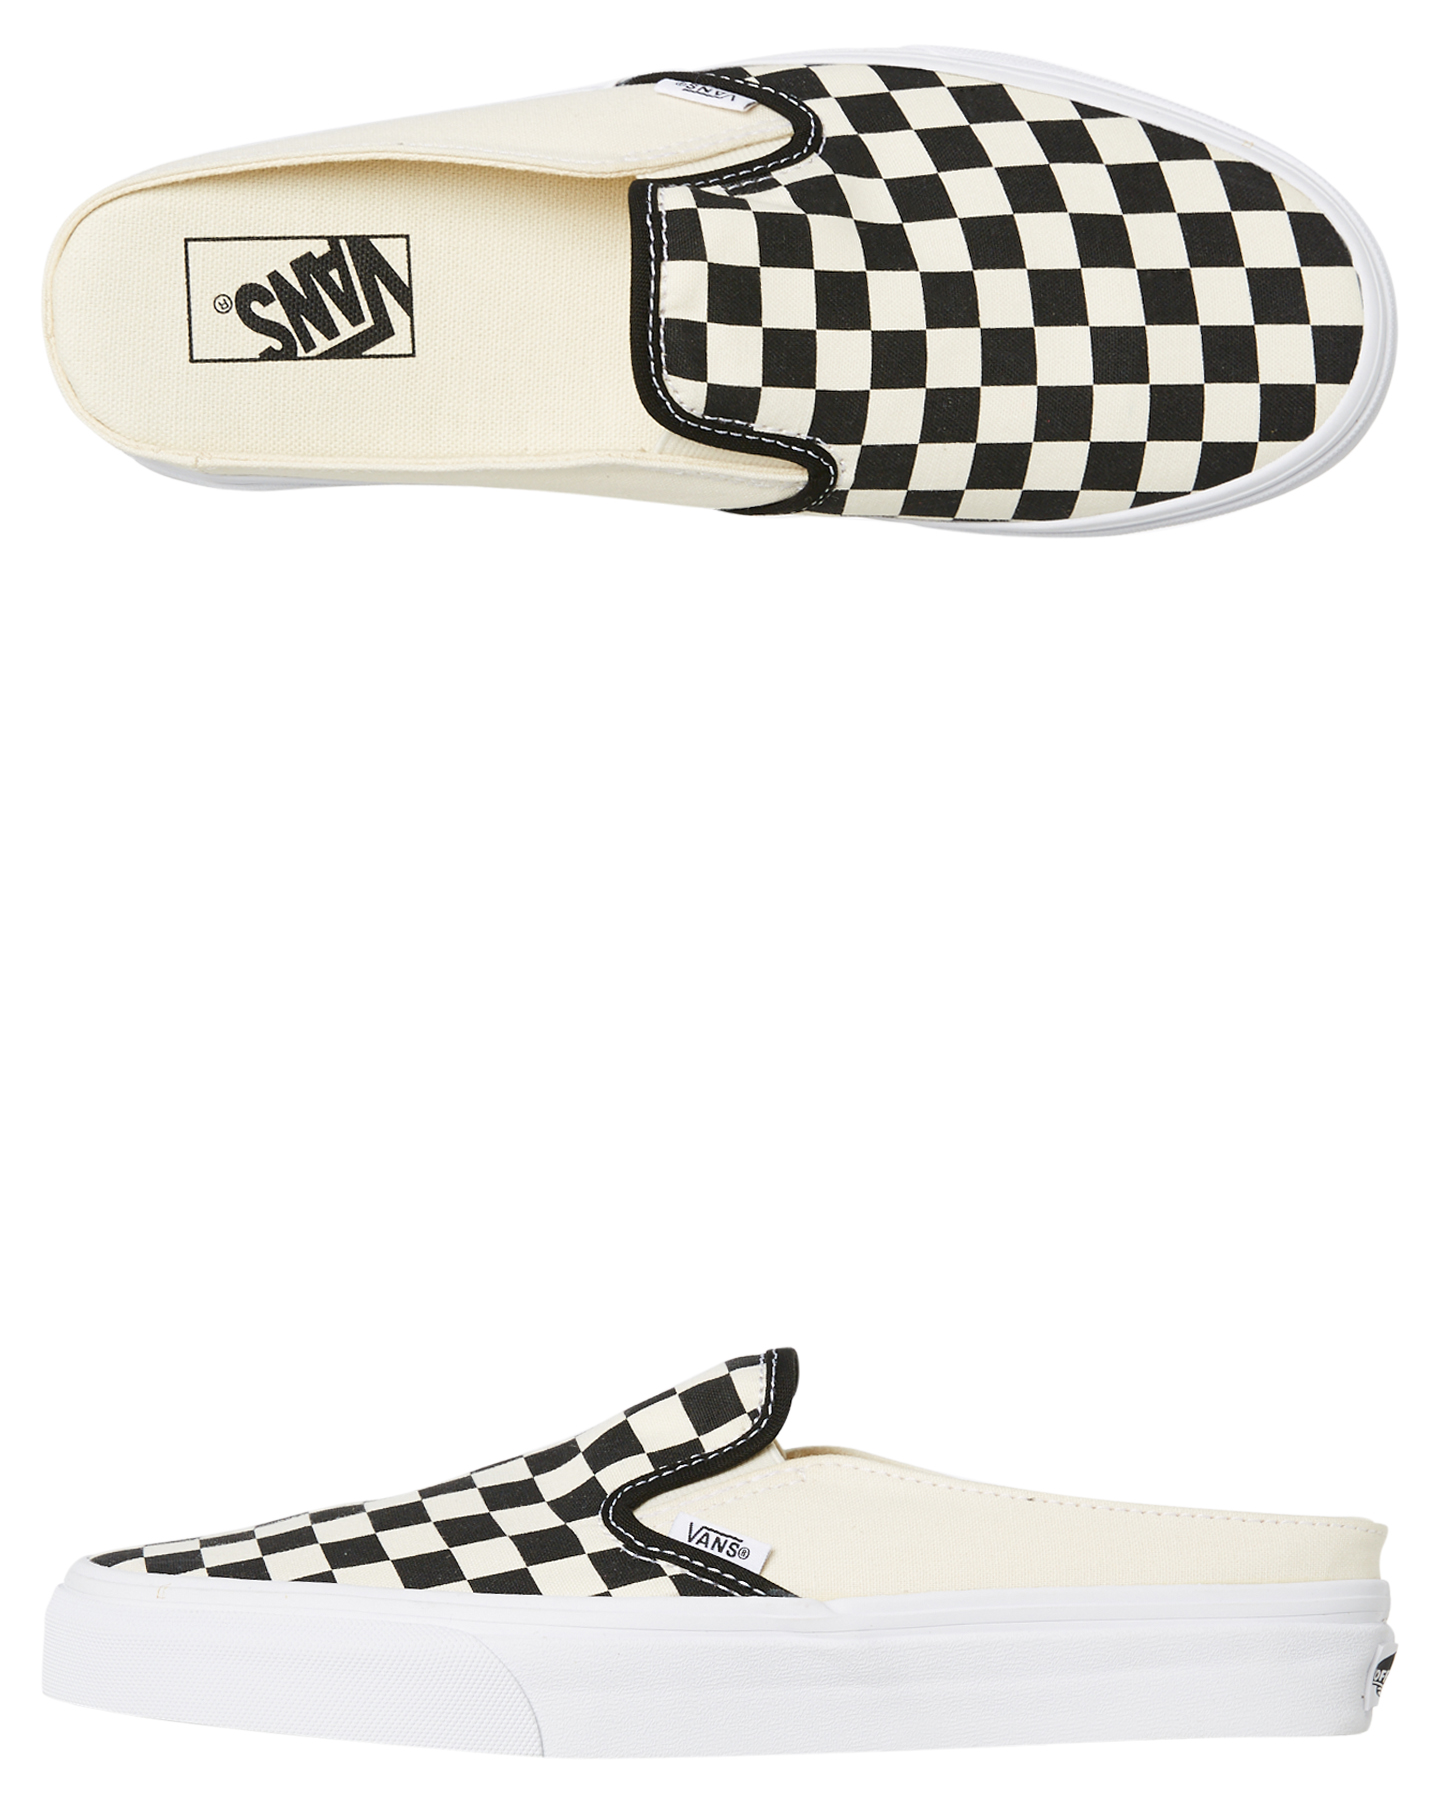 567da93b2404 Details about New Vans Women s Womens Classic Slip On Mule Checkerboard  Rubber Canvas